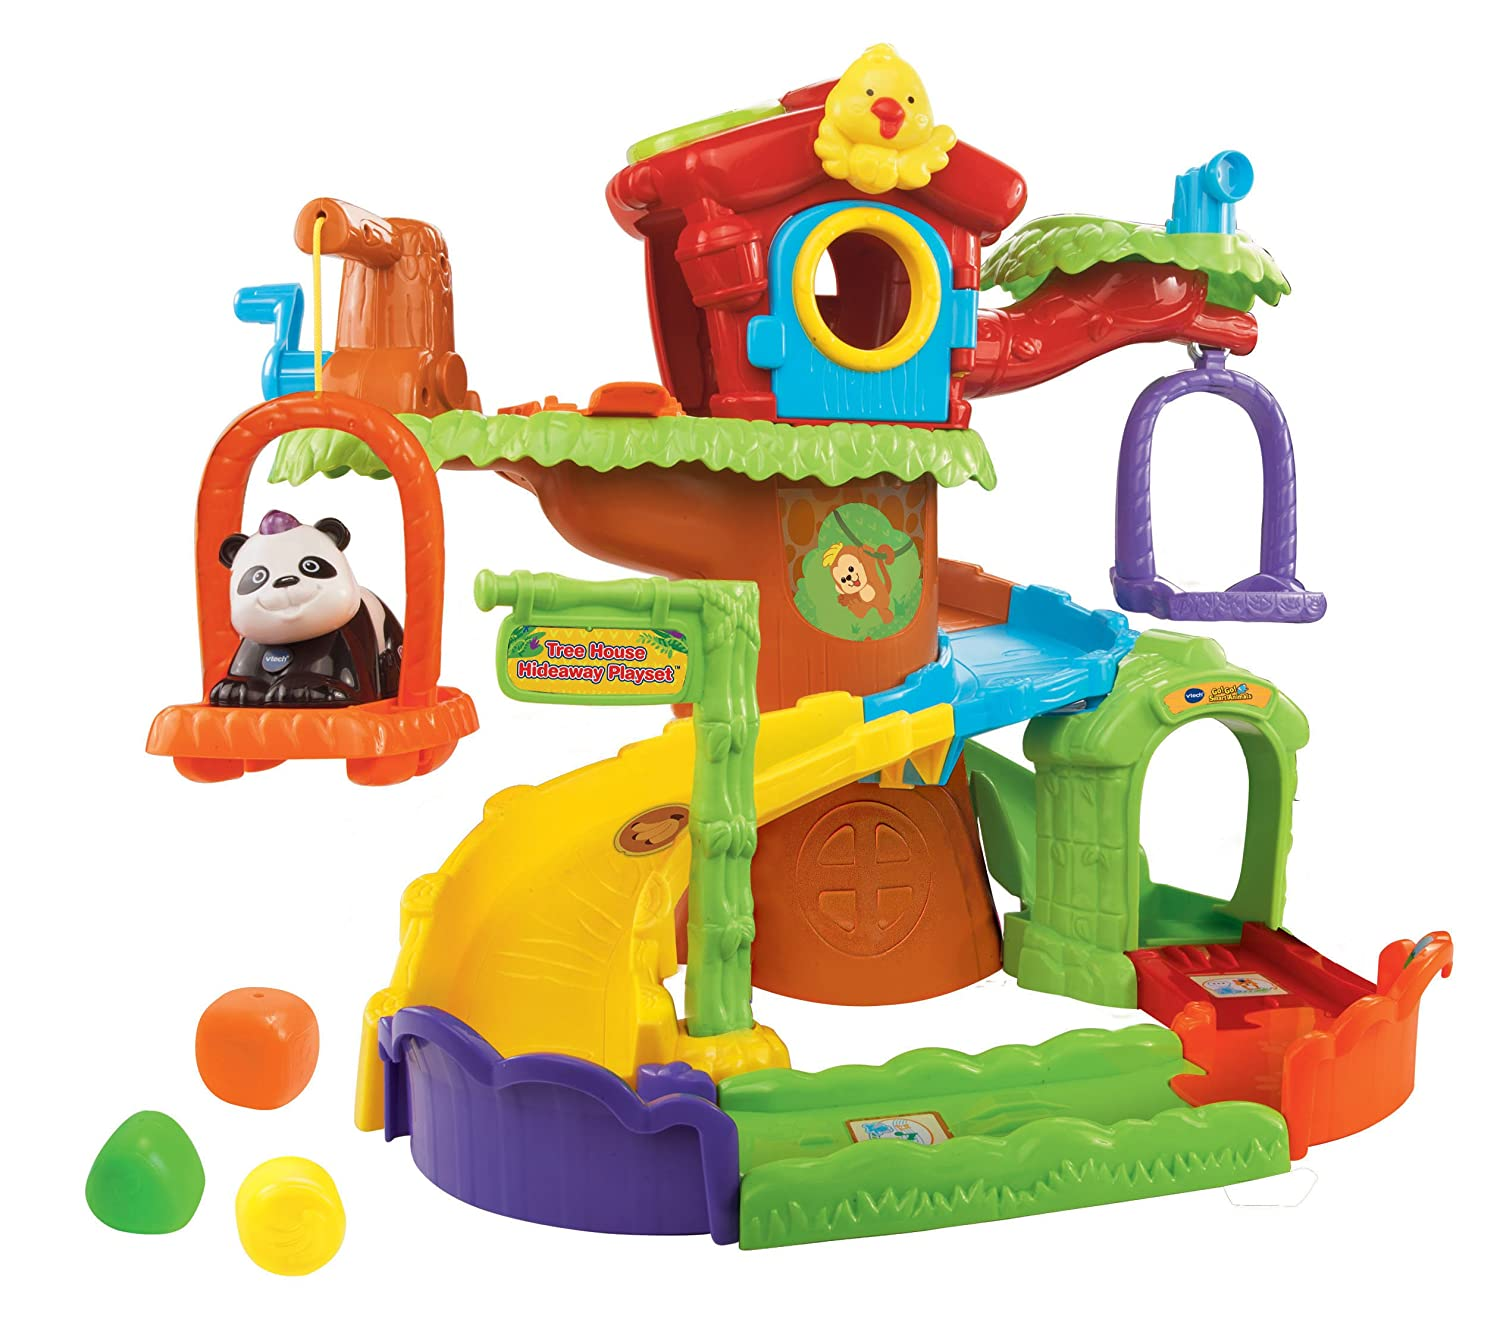 Vtech Go Go Smart Animals Treehouse Hideaway Playset